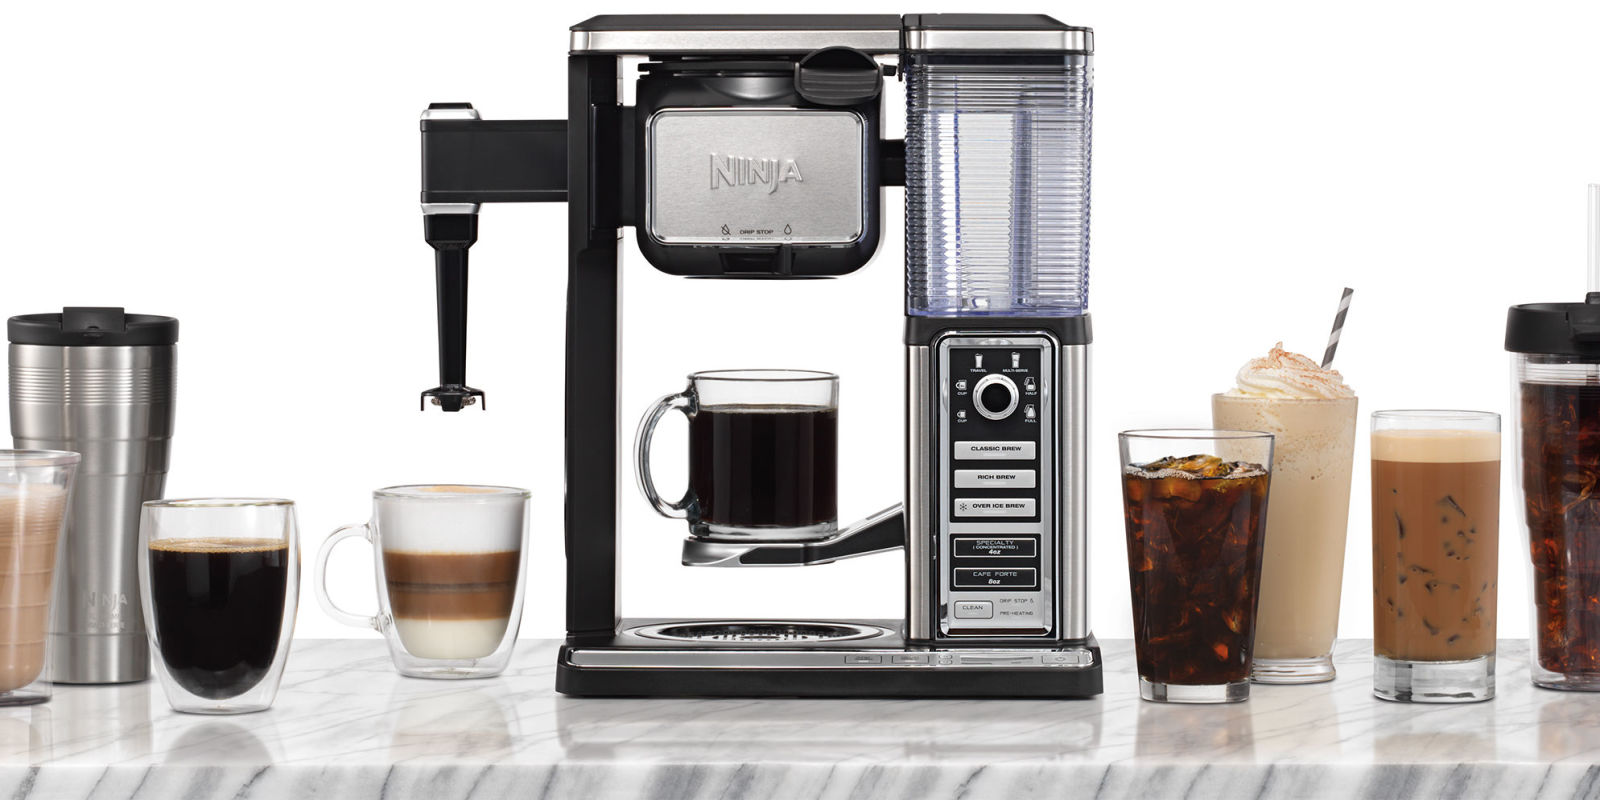 Small bathroom decor ideas - Enter Our Sweepstakes To Win A Ninja Coffee Bar System 2016 Ninja